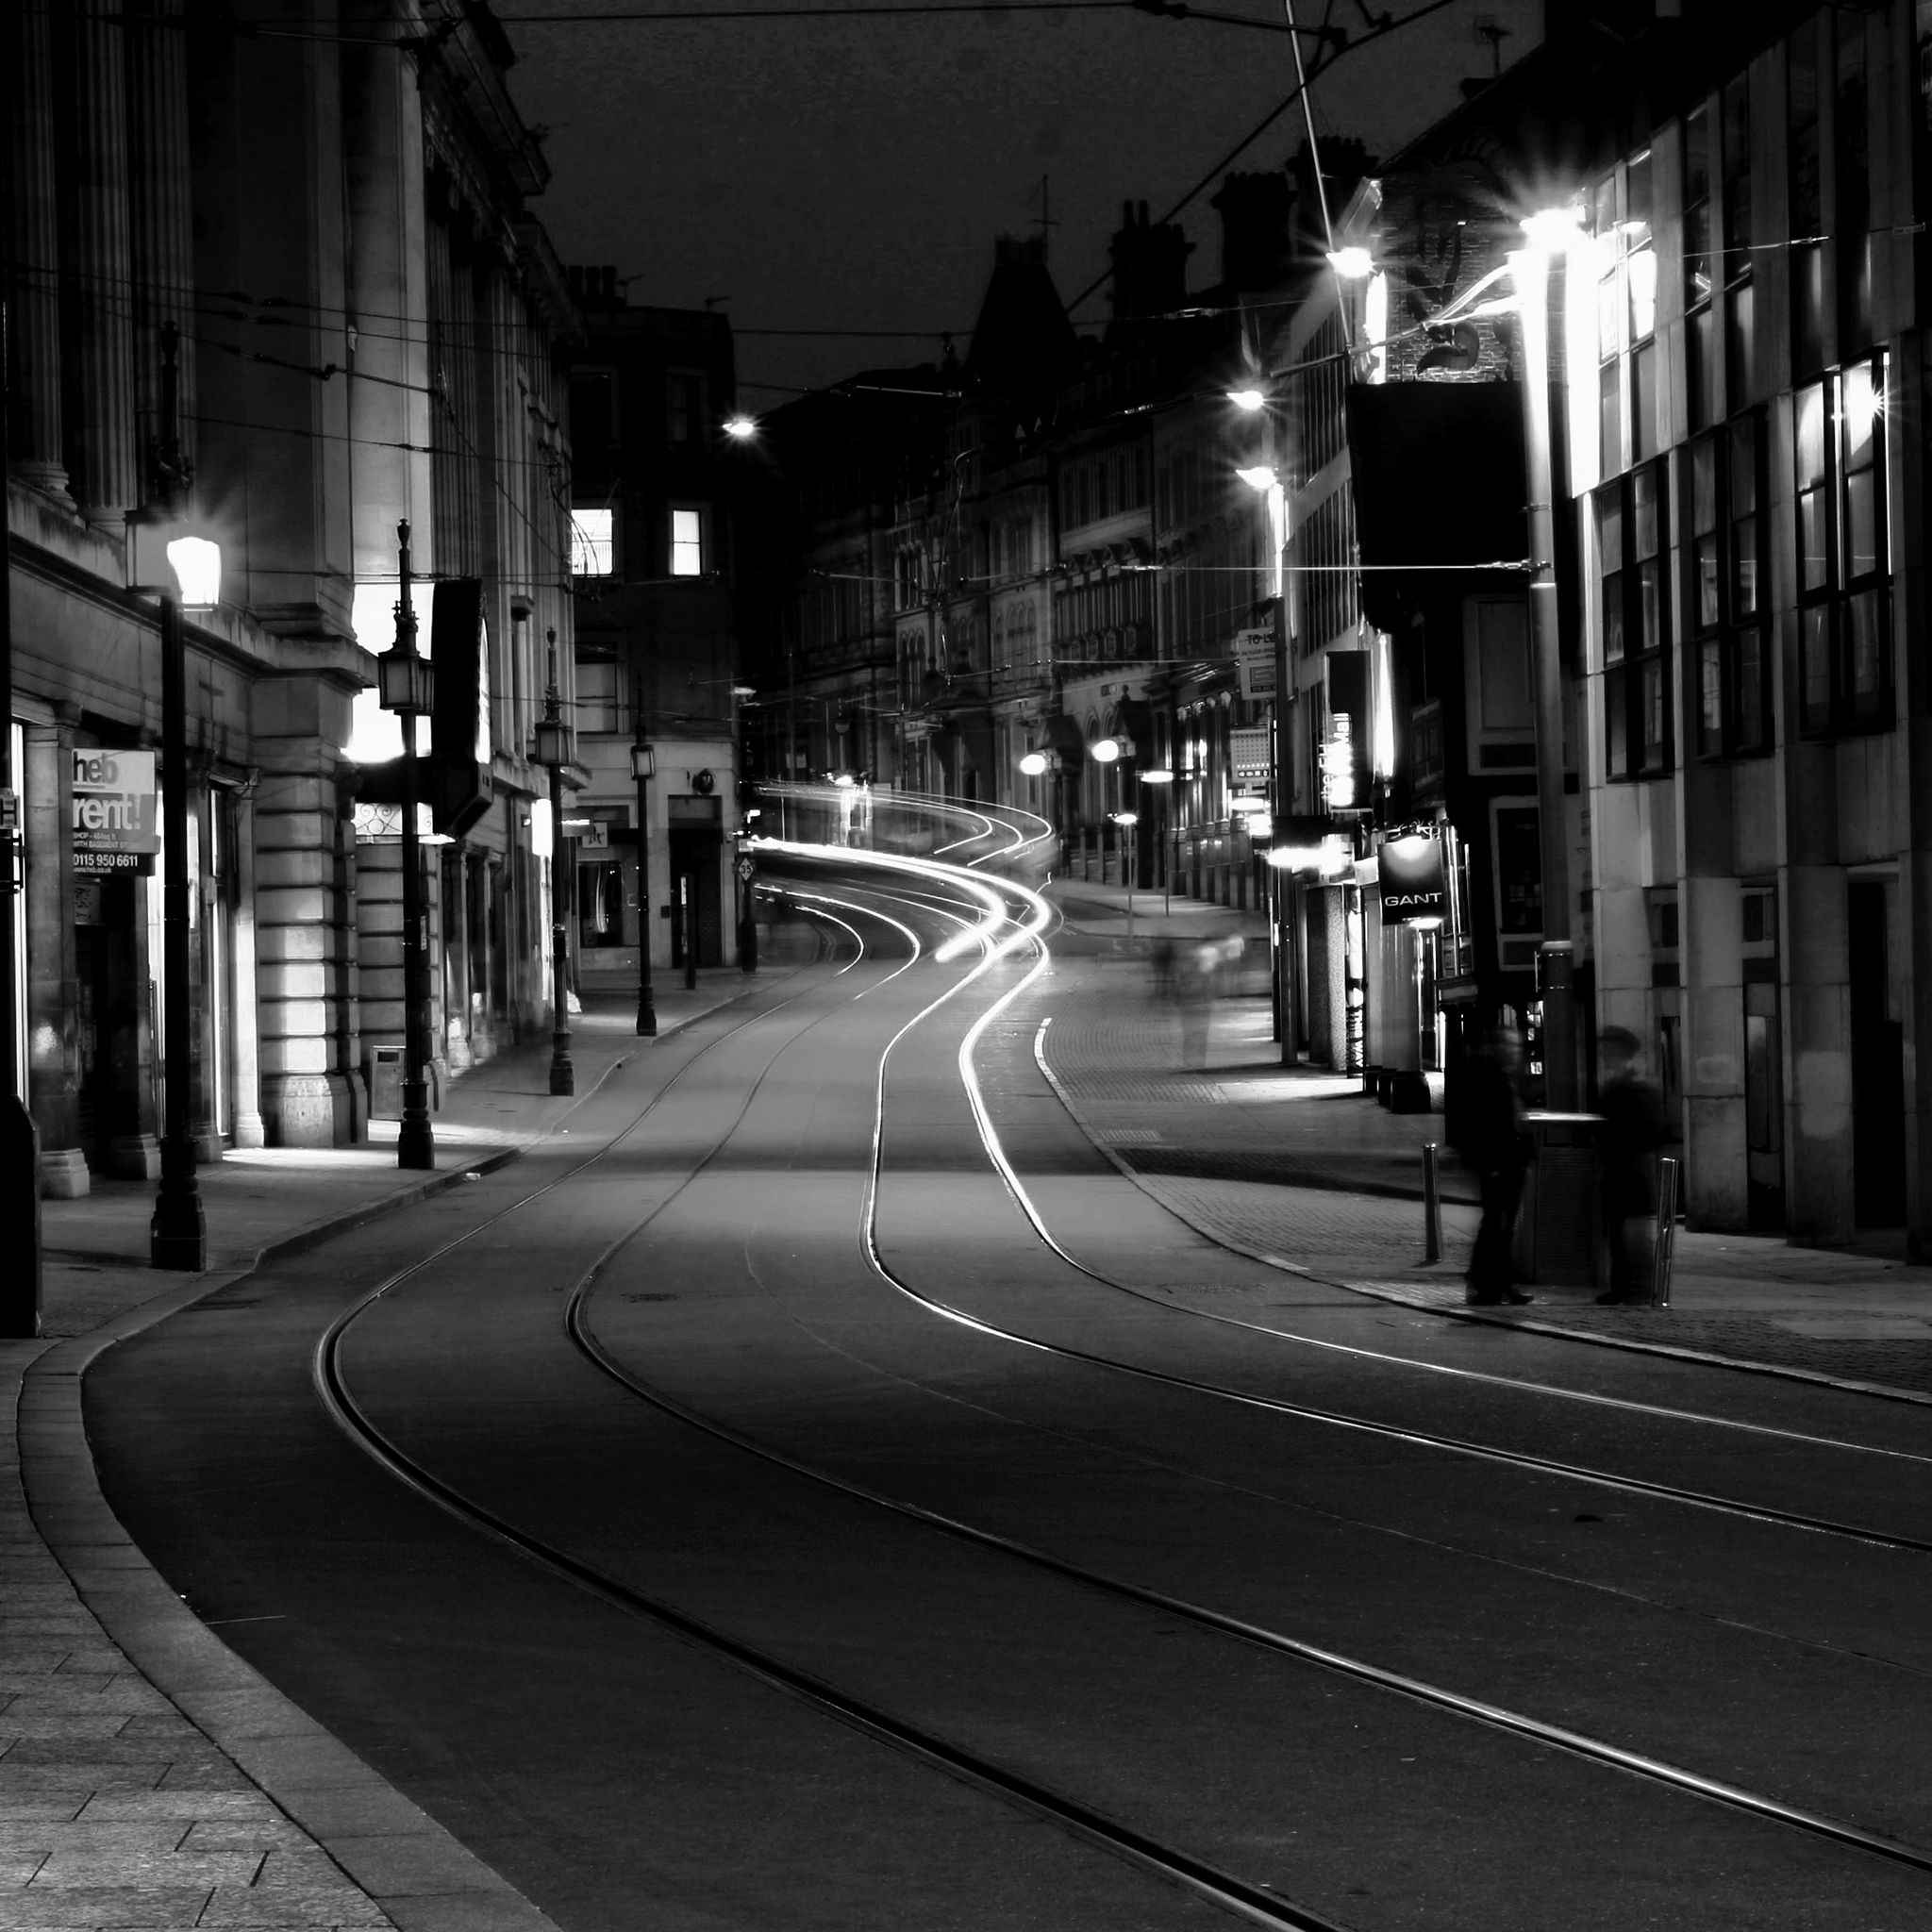 Street black white 3Wallpapers iPad Retina Street Black White   iPad Retina